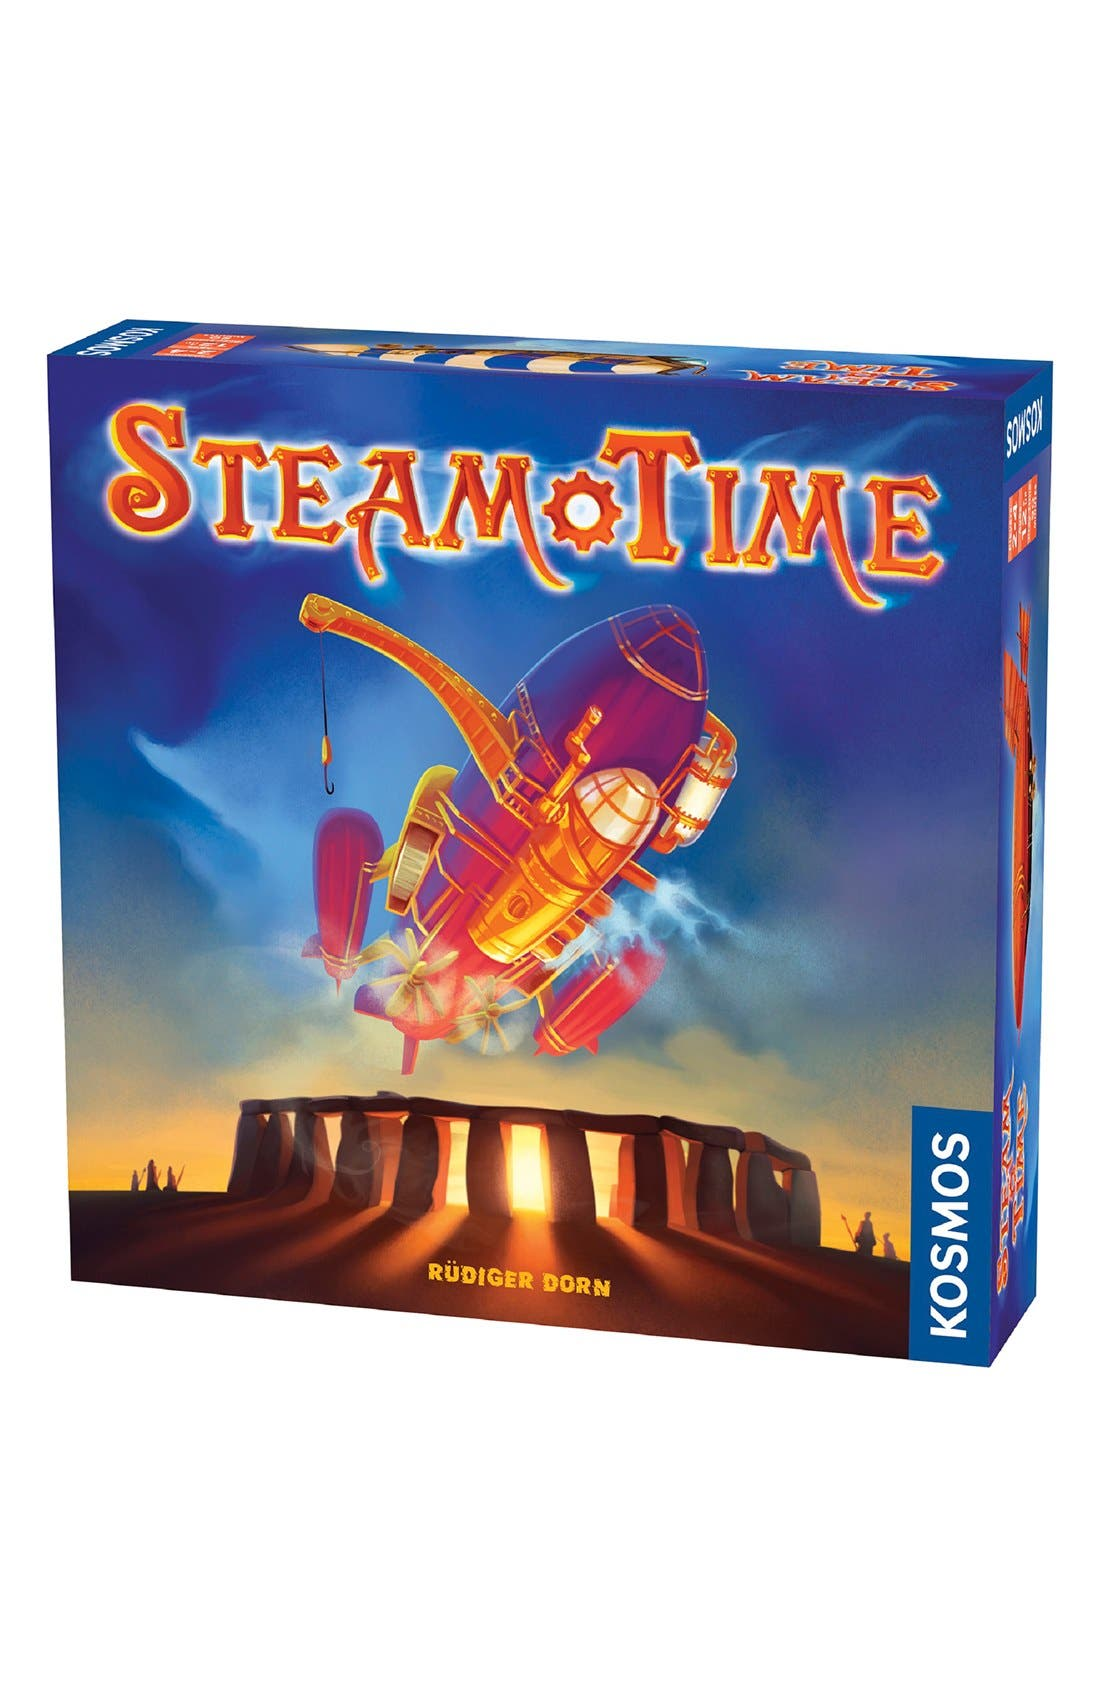 Thames & Kosmos 'Steam Time' Board Game